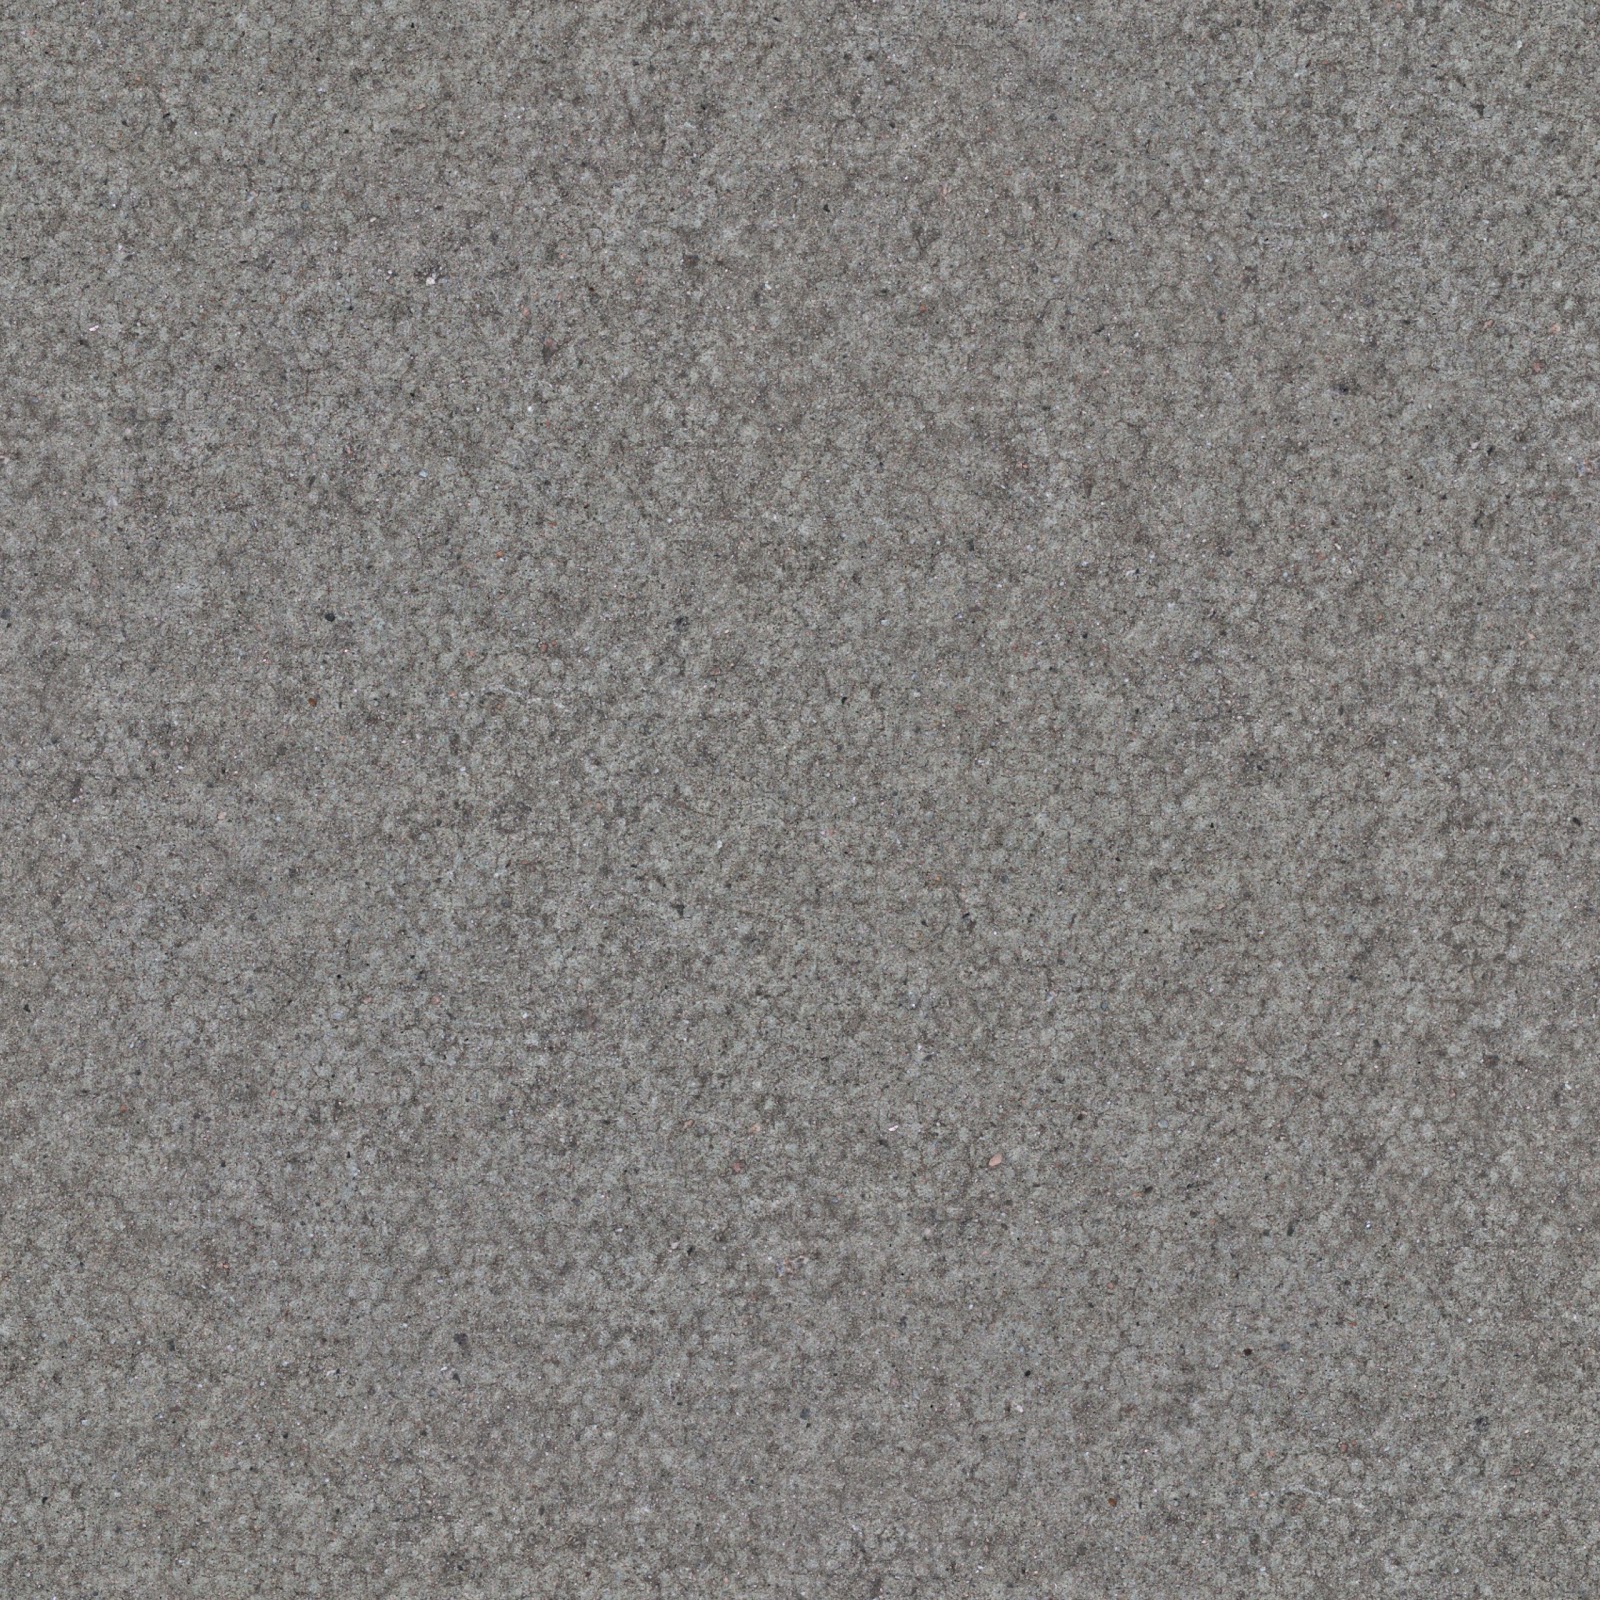 Seamless Textures Concrete Floor Tile Granite Stones Texture If